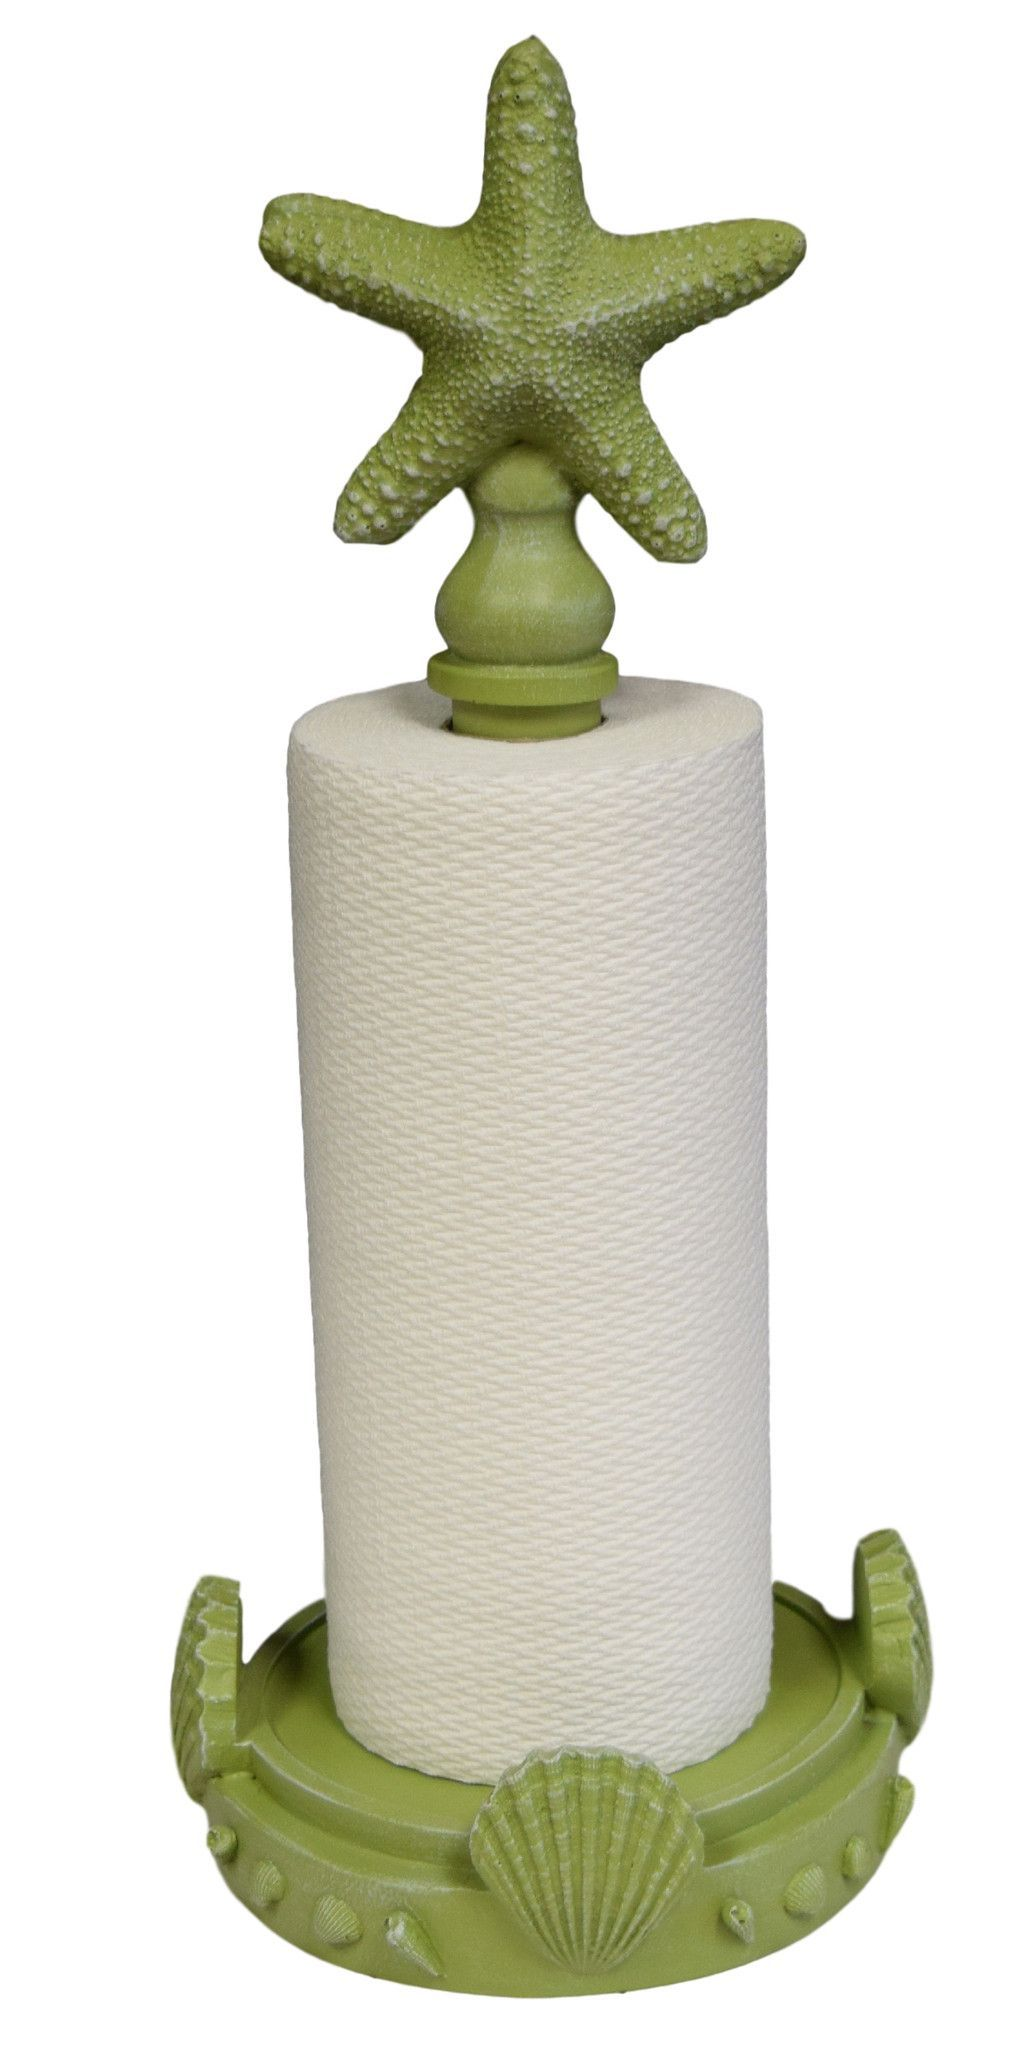 Coastal Paper Towel Holder Amazing Starfish Top Standing Paper Towel Holder In Coastal Green Color Inspiration